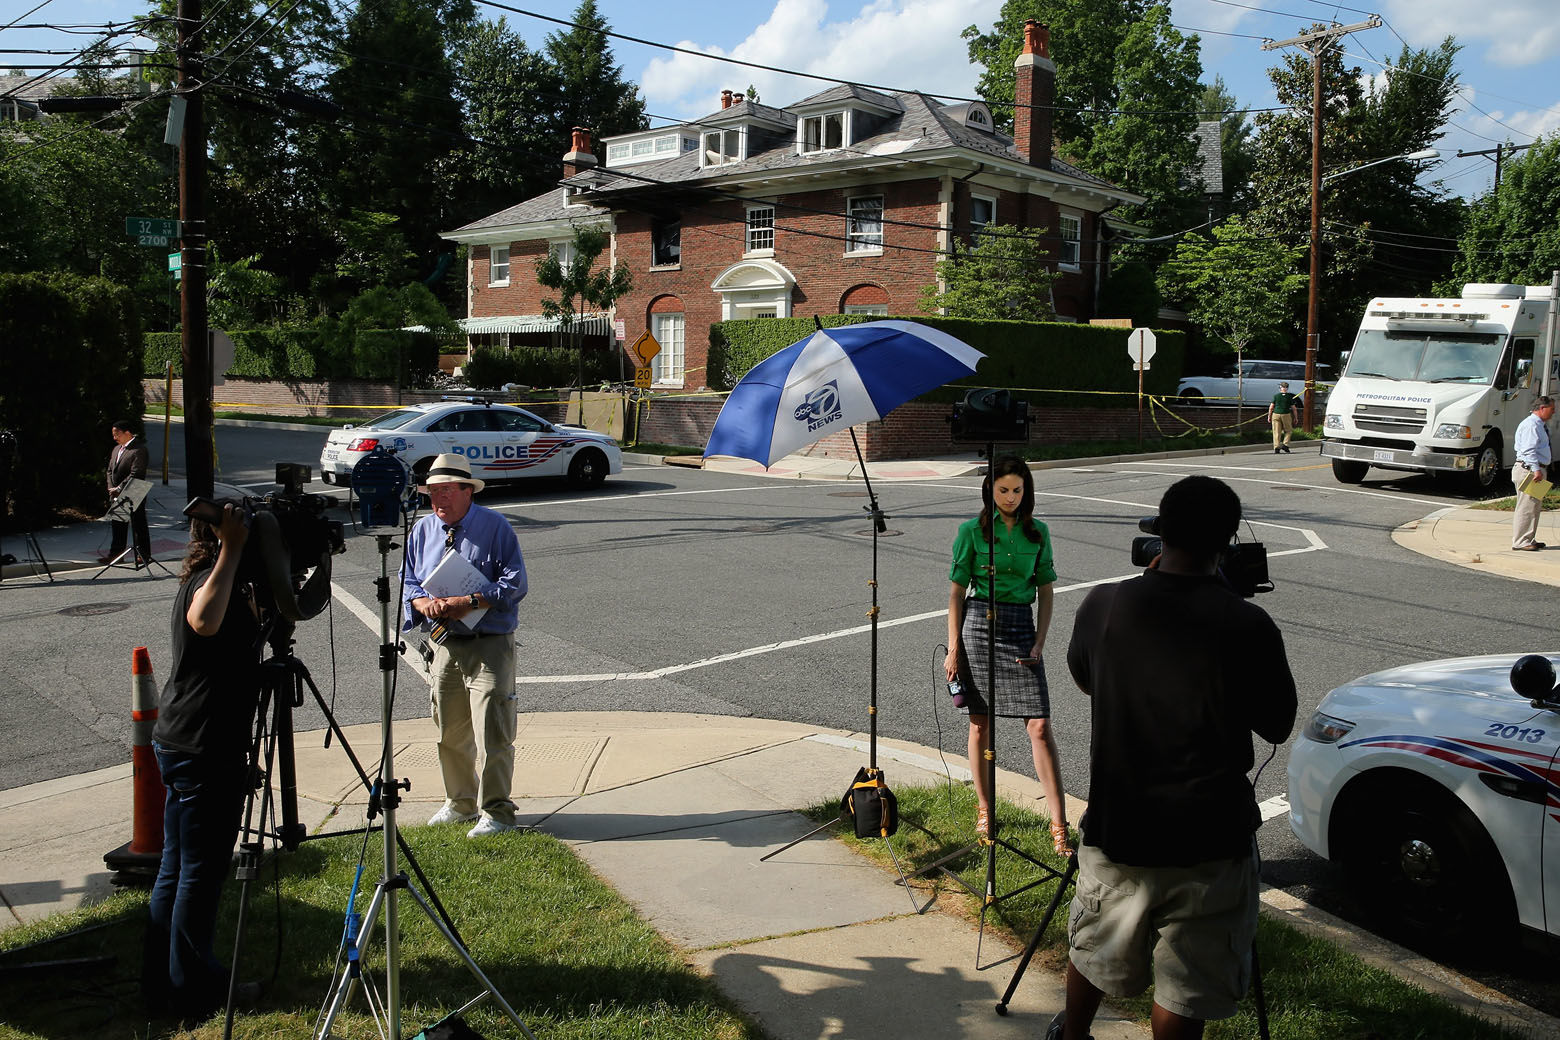 WASHINGTON, DC - MAY 19:  Television reporters and photographers set up across the street from a house on the 3200 block of Woodland Drive NW May 19, 2015 in Washington, DC. Firefighters discovered the bodies of Savvas Savopoulos, 46, his wife Amy, 47, their 10-year-old son Philip, and the housekeeper, Veralicia Figueroa, 57, last Thursday afternoon when they responded to a blaze at the house. Two Savopoulos daughters were away in boarding school at the time. Investigators have ruled the deaths homicides and say they could continue to collect evidence at the house for another week.  (Photo by Chip Somodevilla/Getty Images)